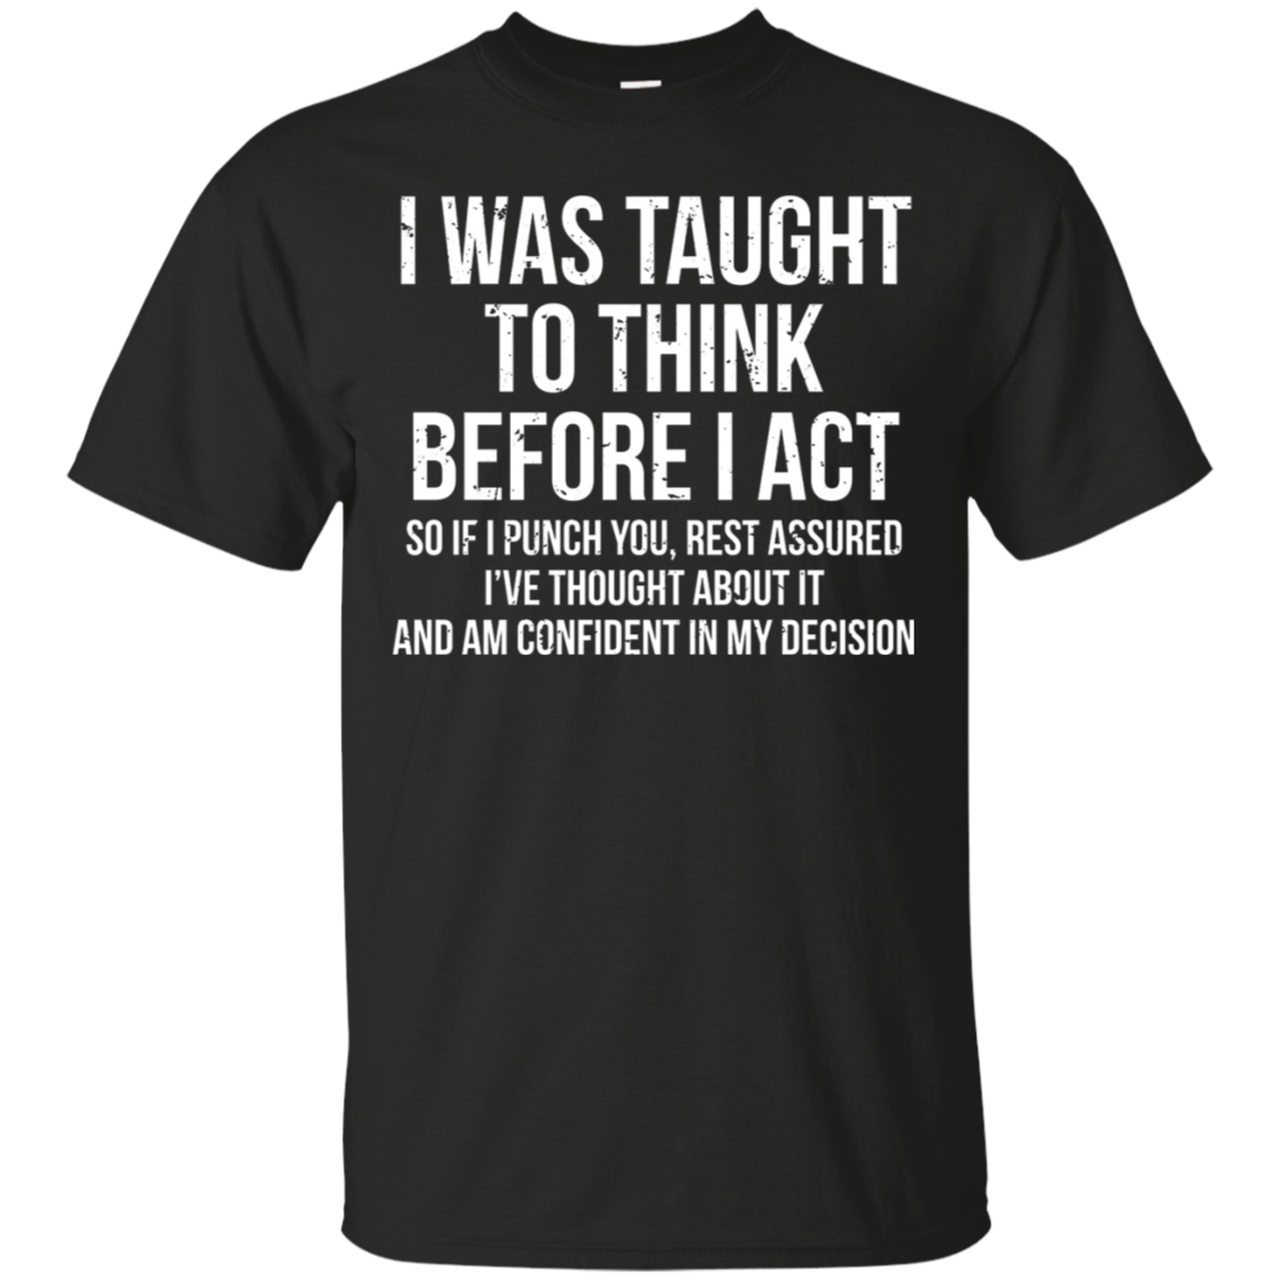 Photo of I Was Taught To Think Before I Act T Shirt Cotton Shirt- Gift Trending Design T Shirt